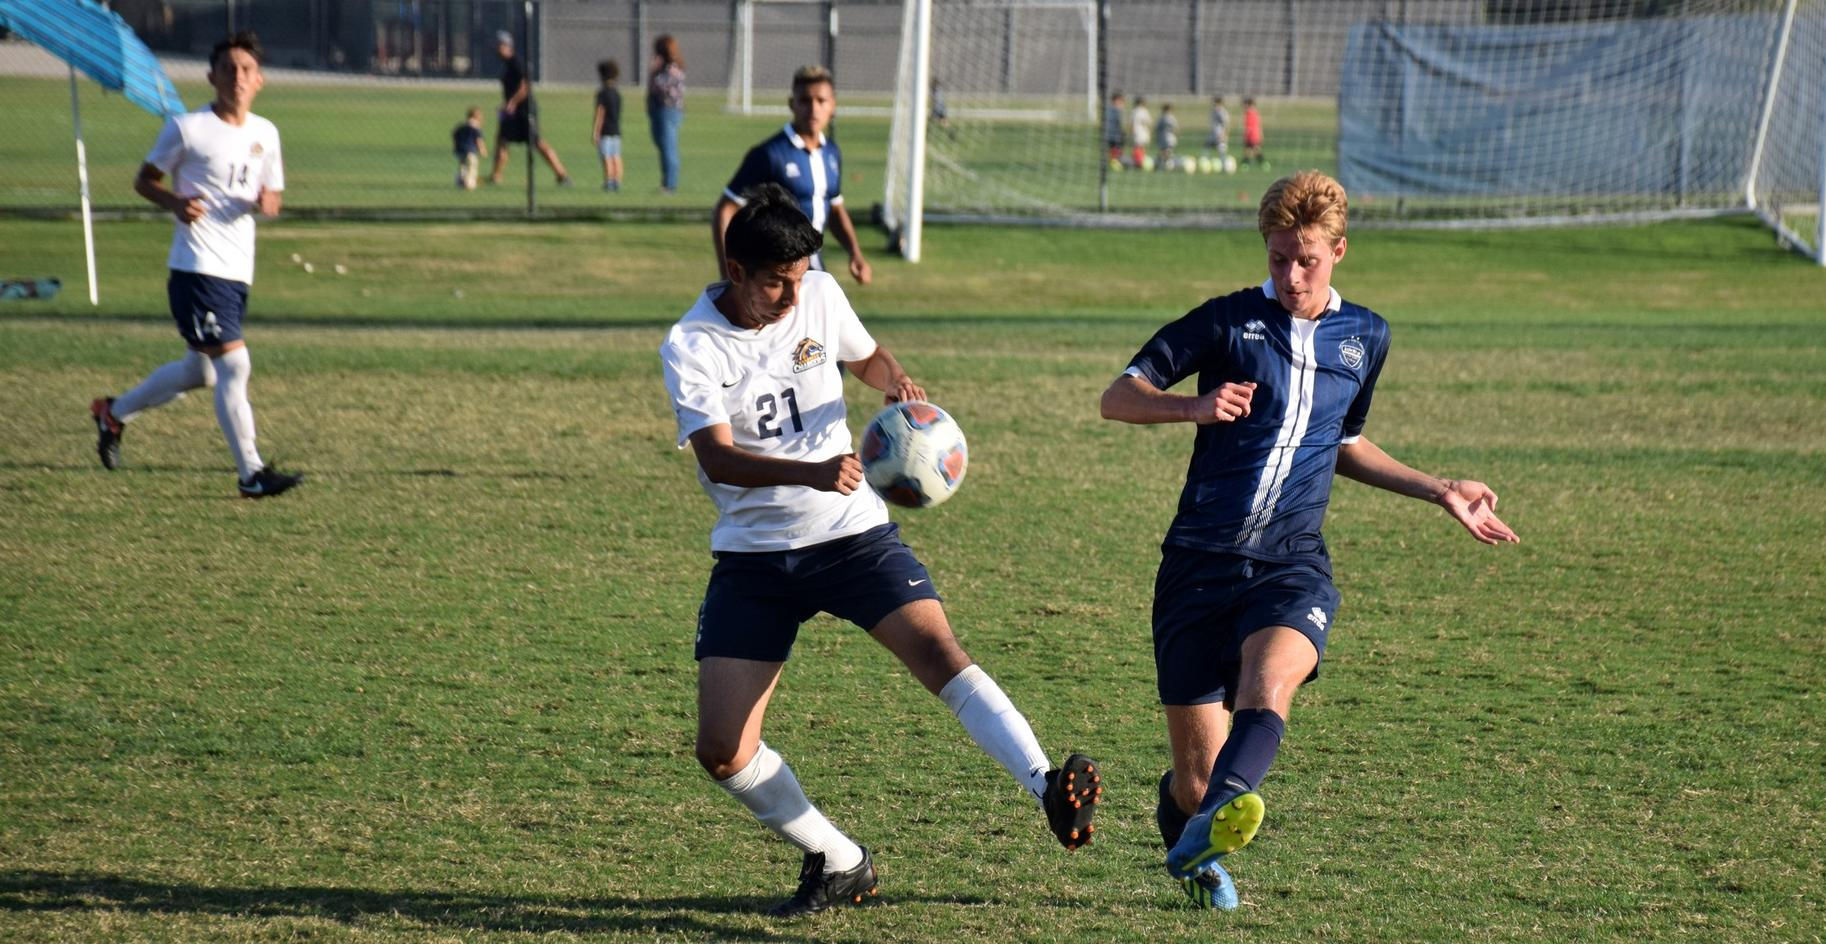 Men's soccer team battles, but falls in first round at Fullerton